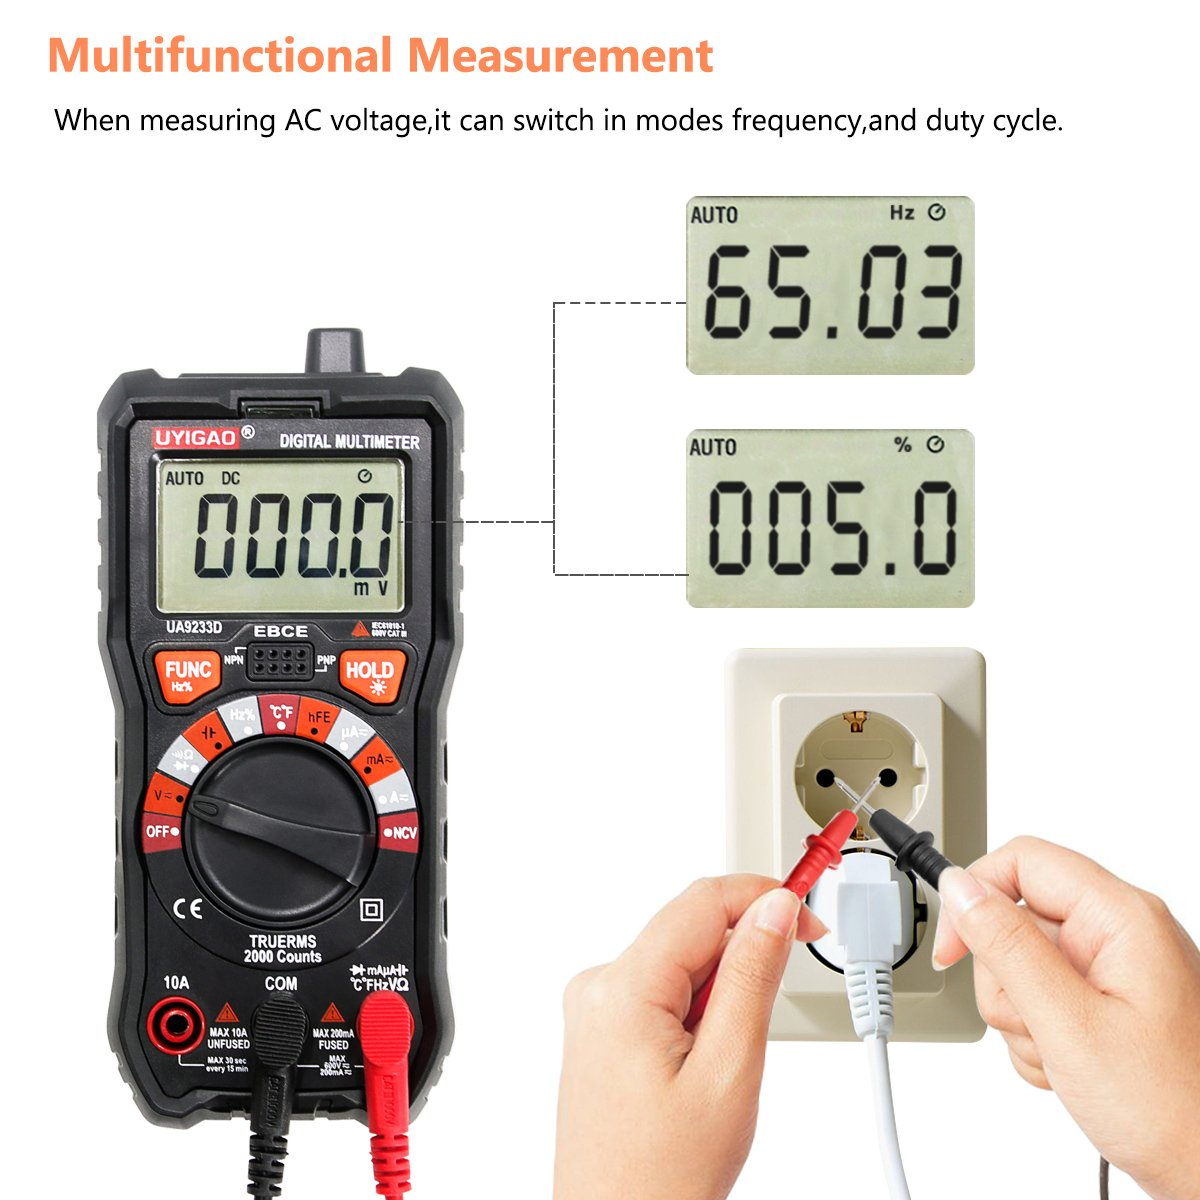 Digital Multimeter UYIGAO Auto-Ranging Digital Multimeters Electronic Measuring Instrument AC Voltage Detector Portable Amp Ohm Volt Test Meter Multi Tester Diode and Continuity Test Scanners Home Use by UYIGAO (Image #4)